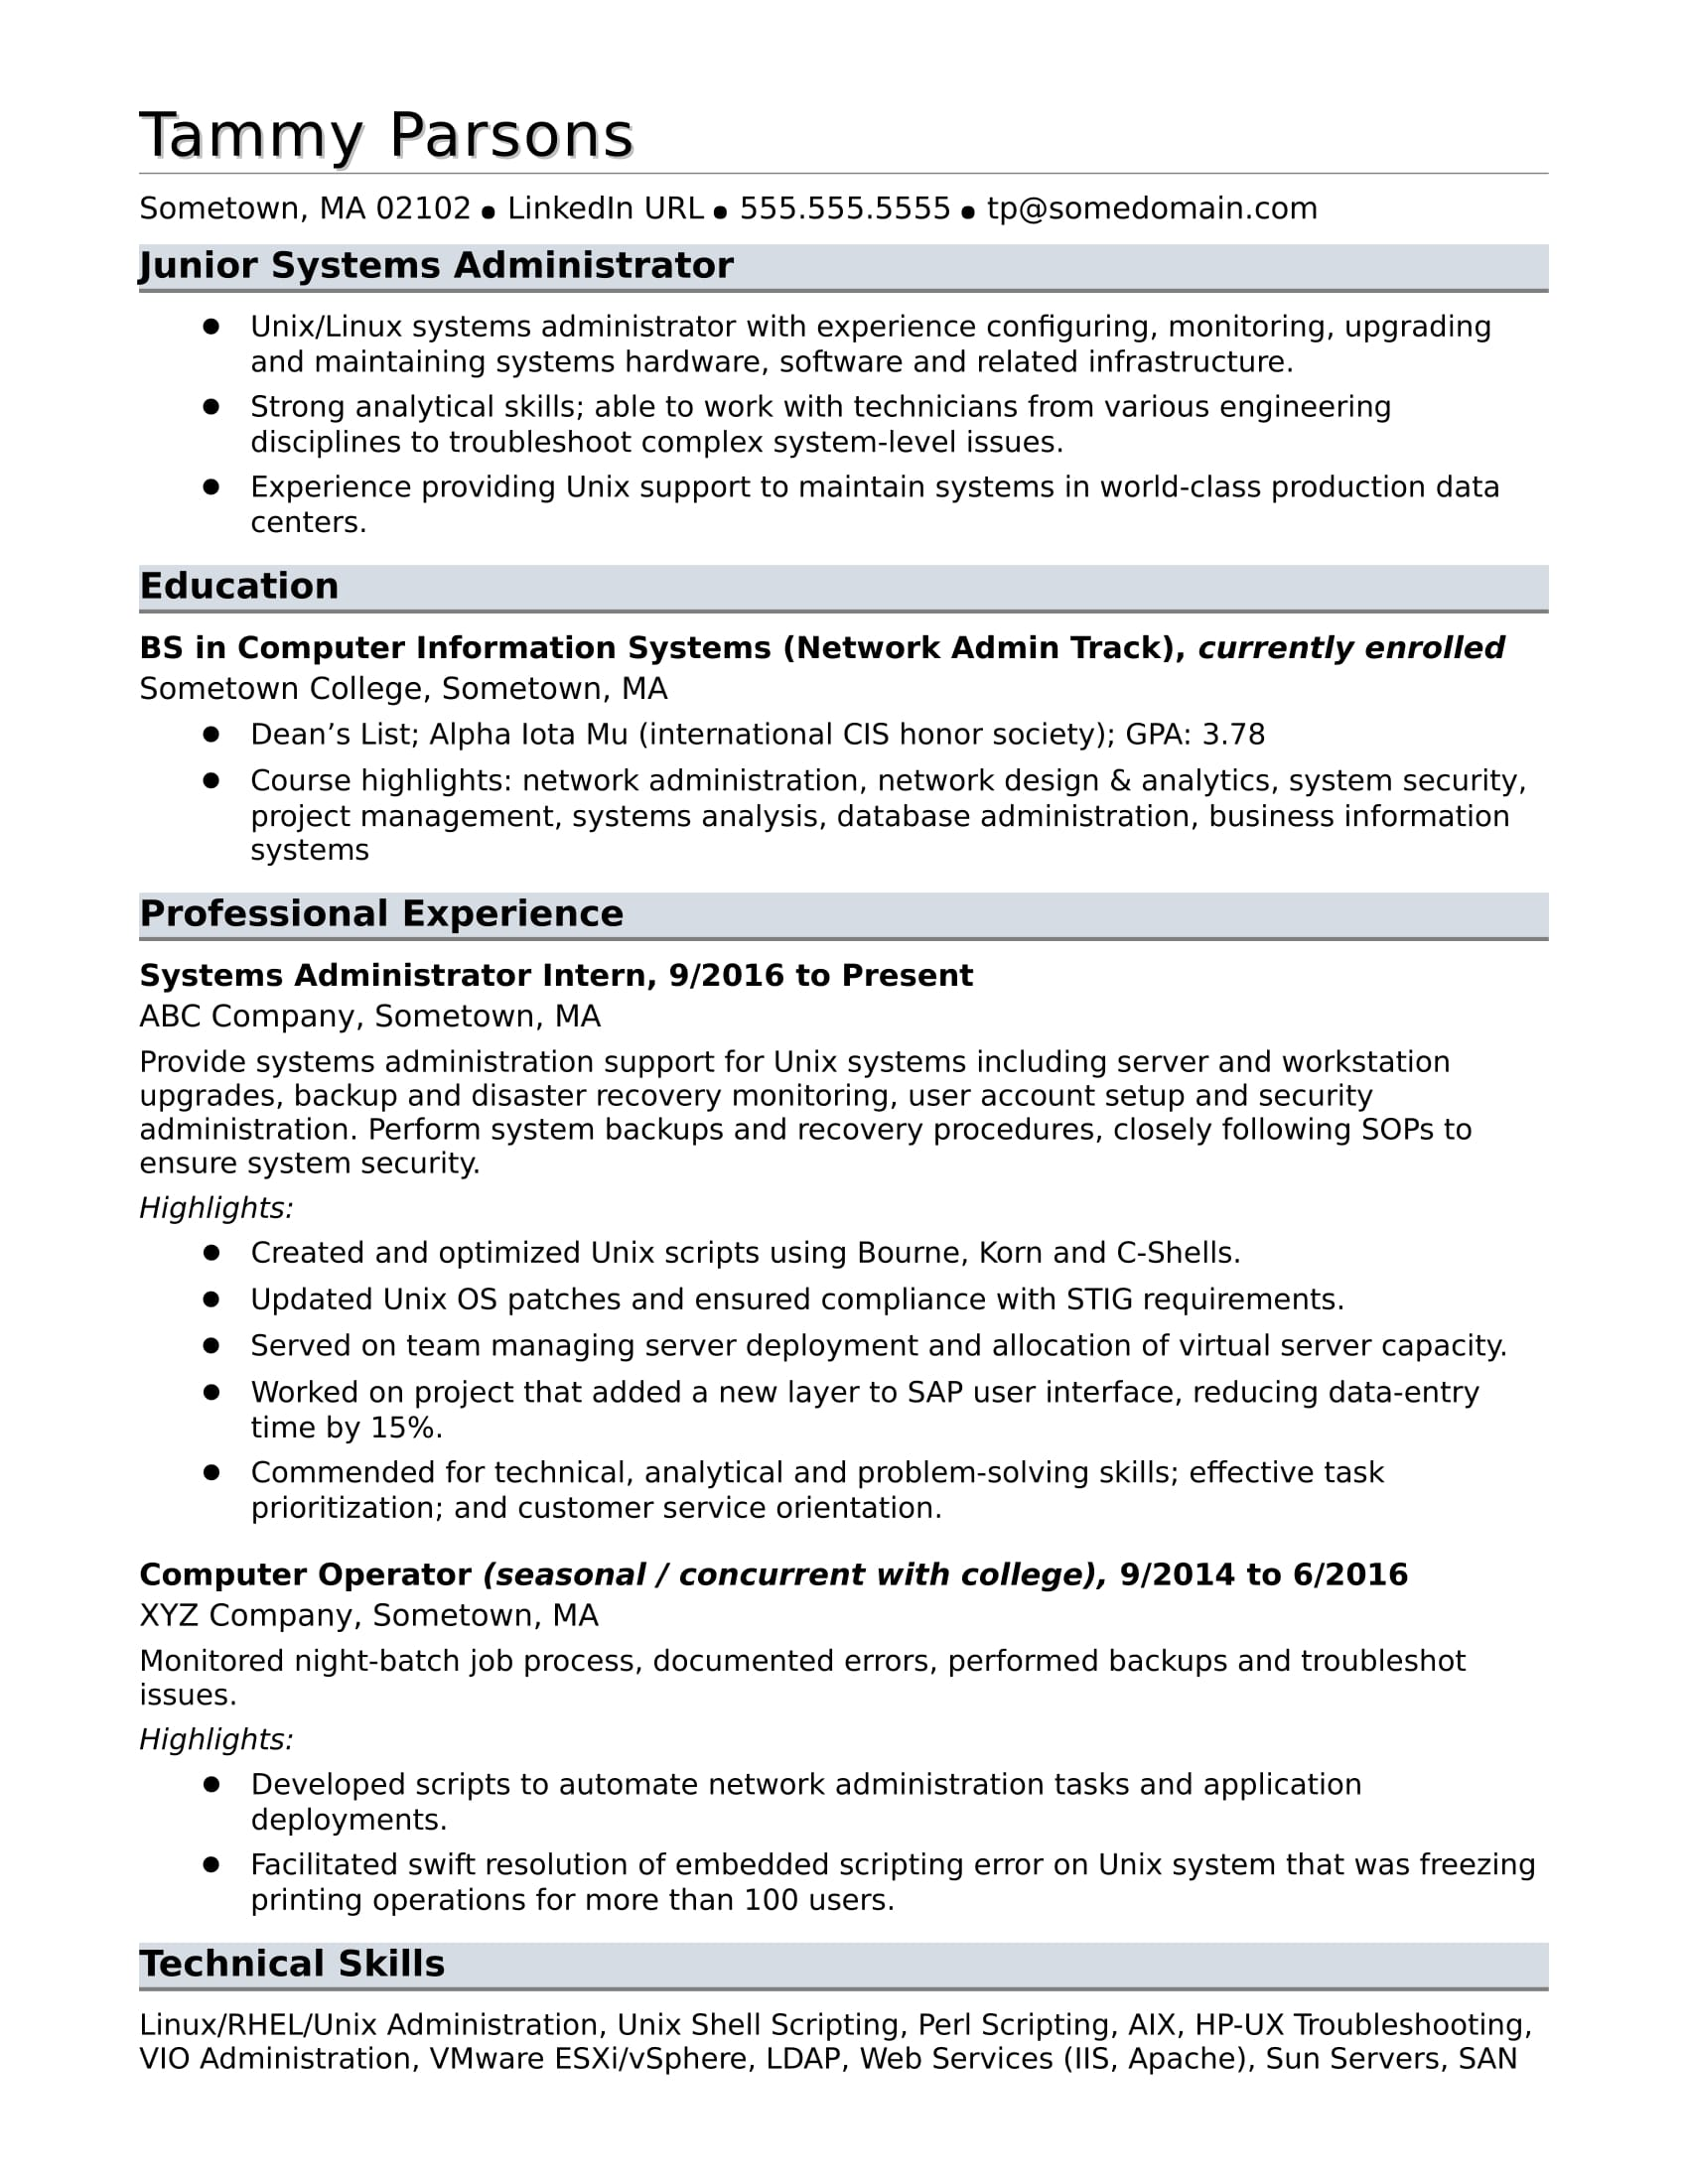 sample resume for an entry level systems administrator monster system collection profile Resume System Administrator Resume Sample Download